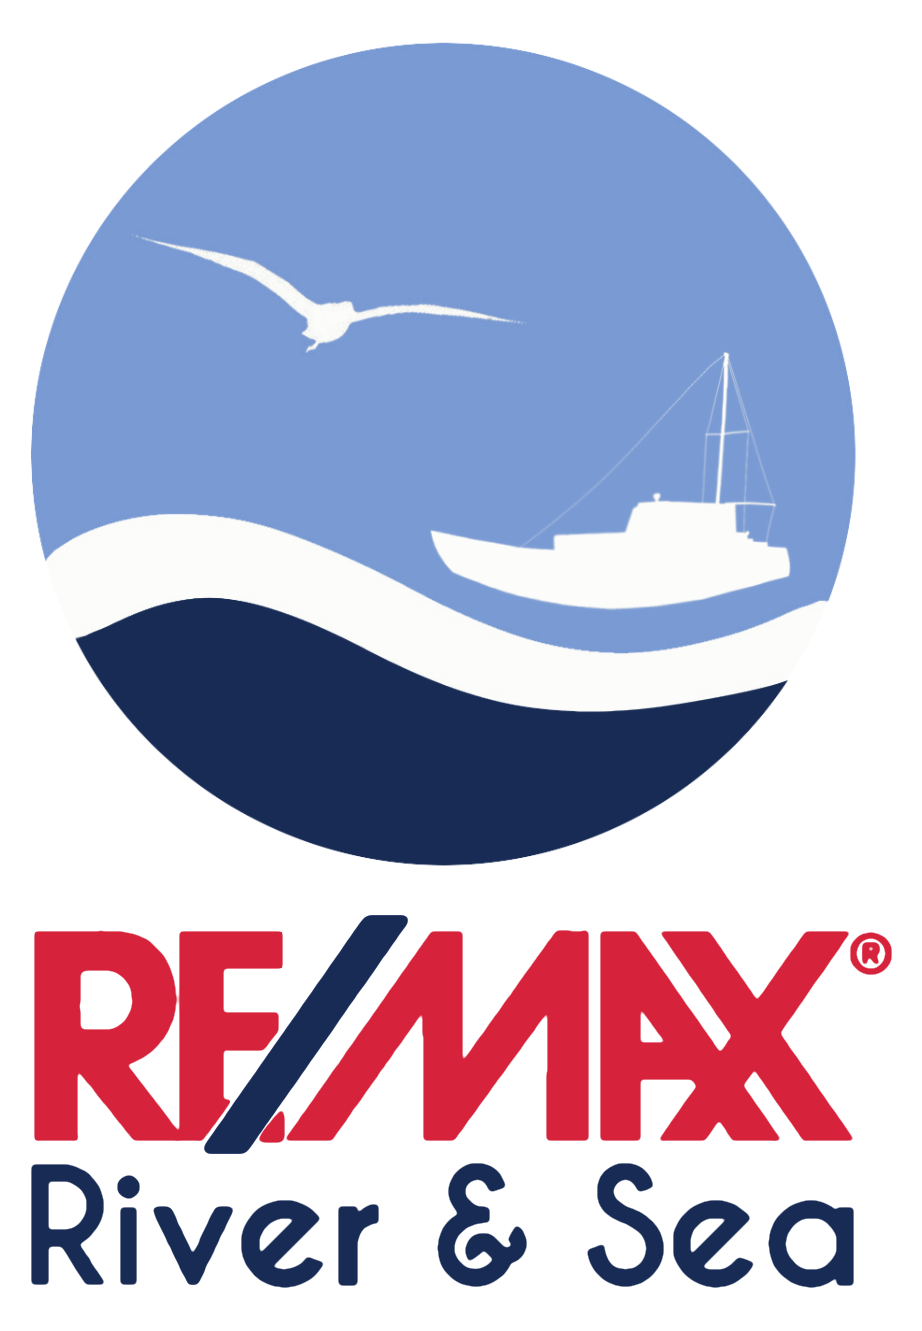 Alethea Eckhardt - RE/MAX River & Sea Logo